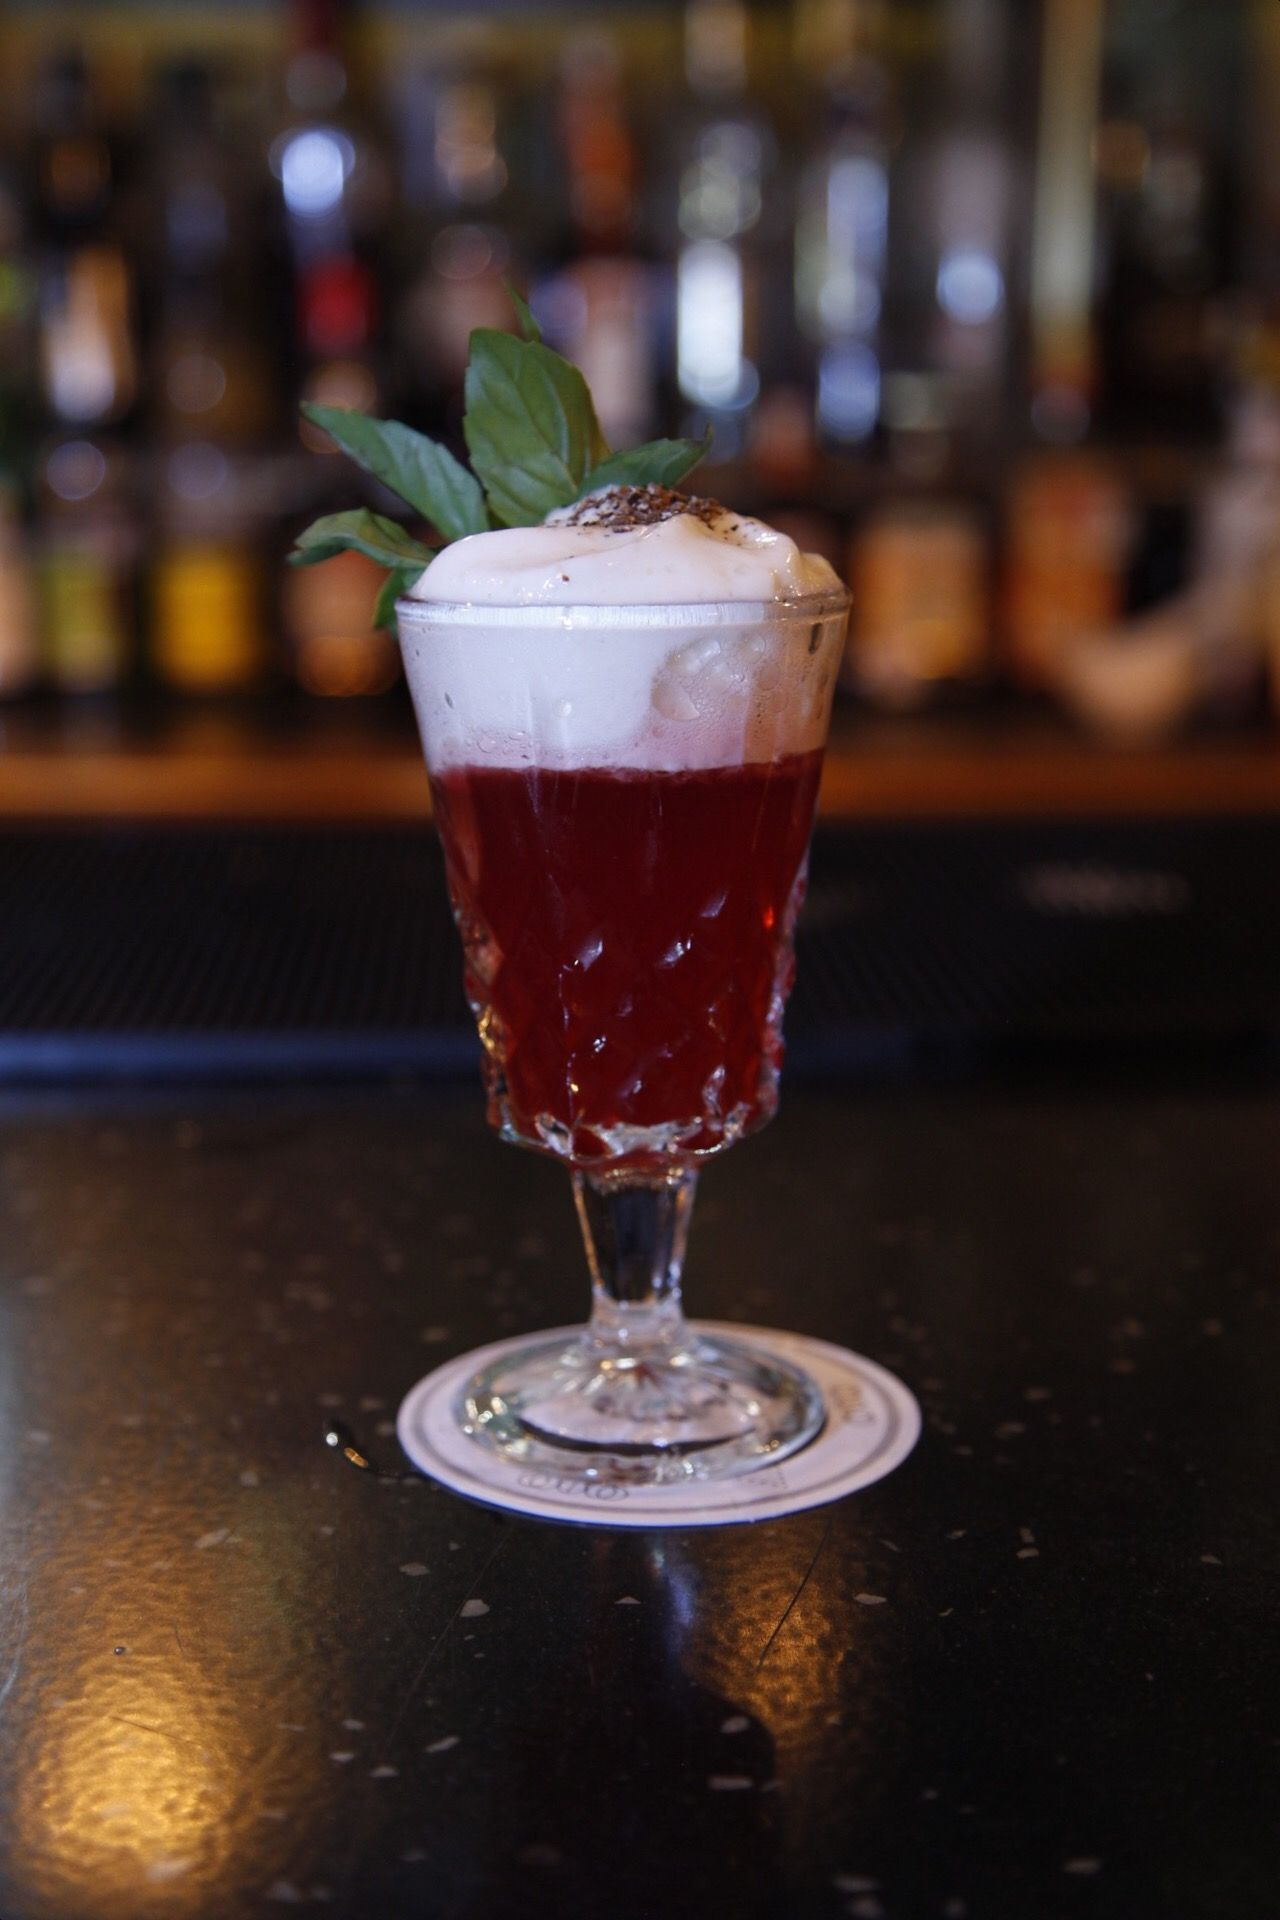 La Morena Cognac Hennessy Verry Special Hibiscus Flower Syrup